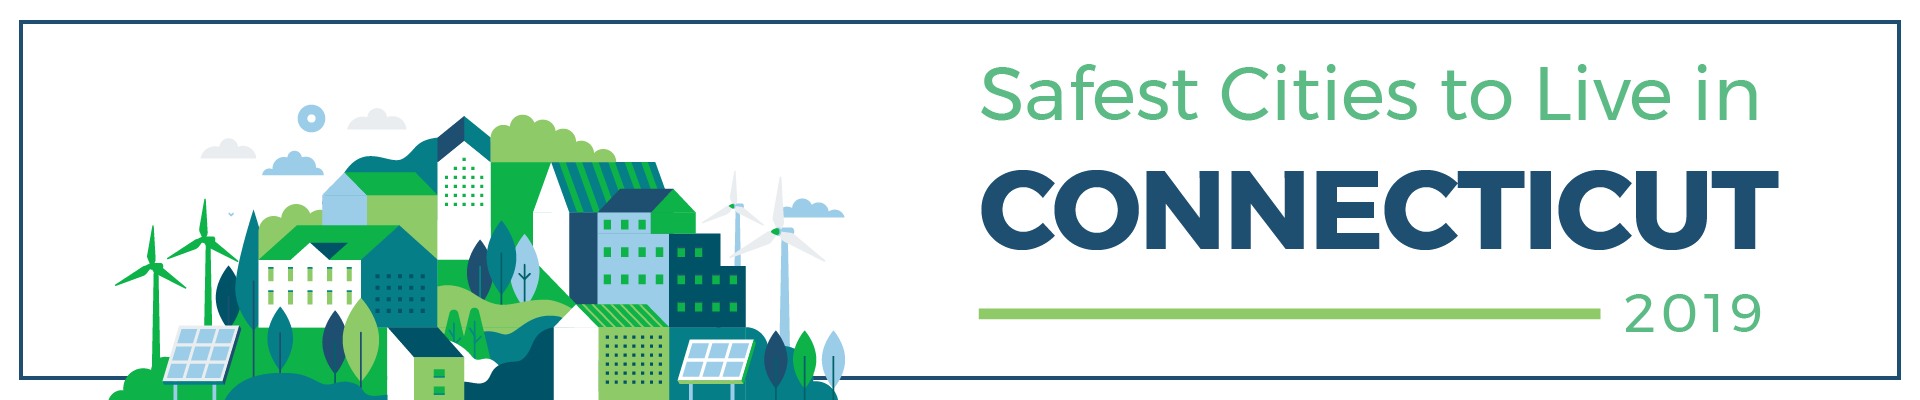 header - safest_cities_connecticut_2019